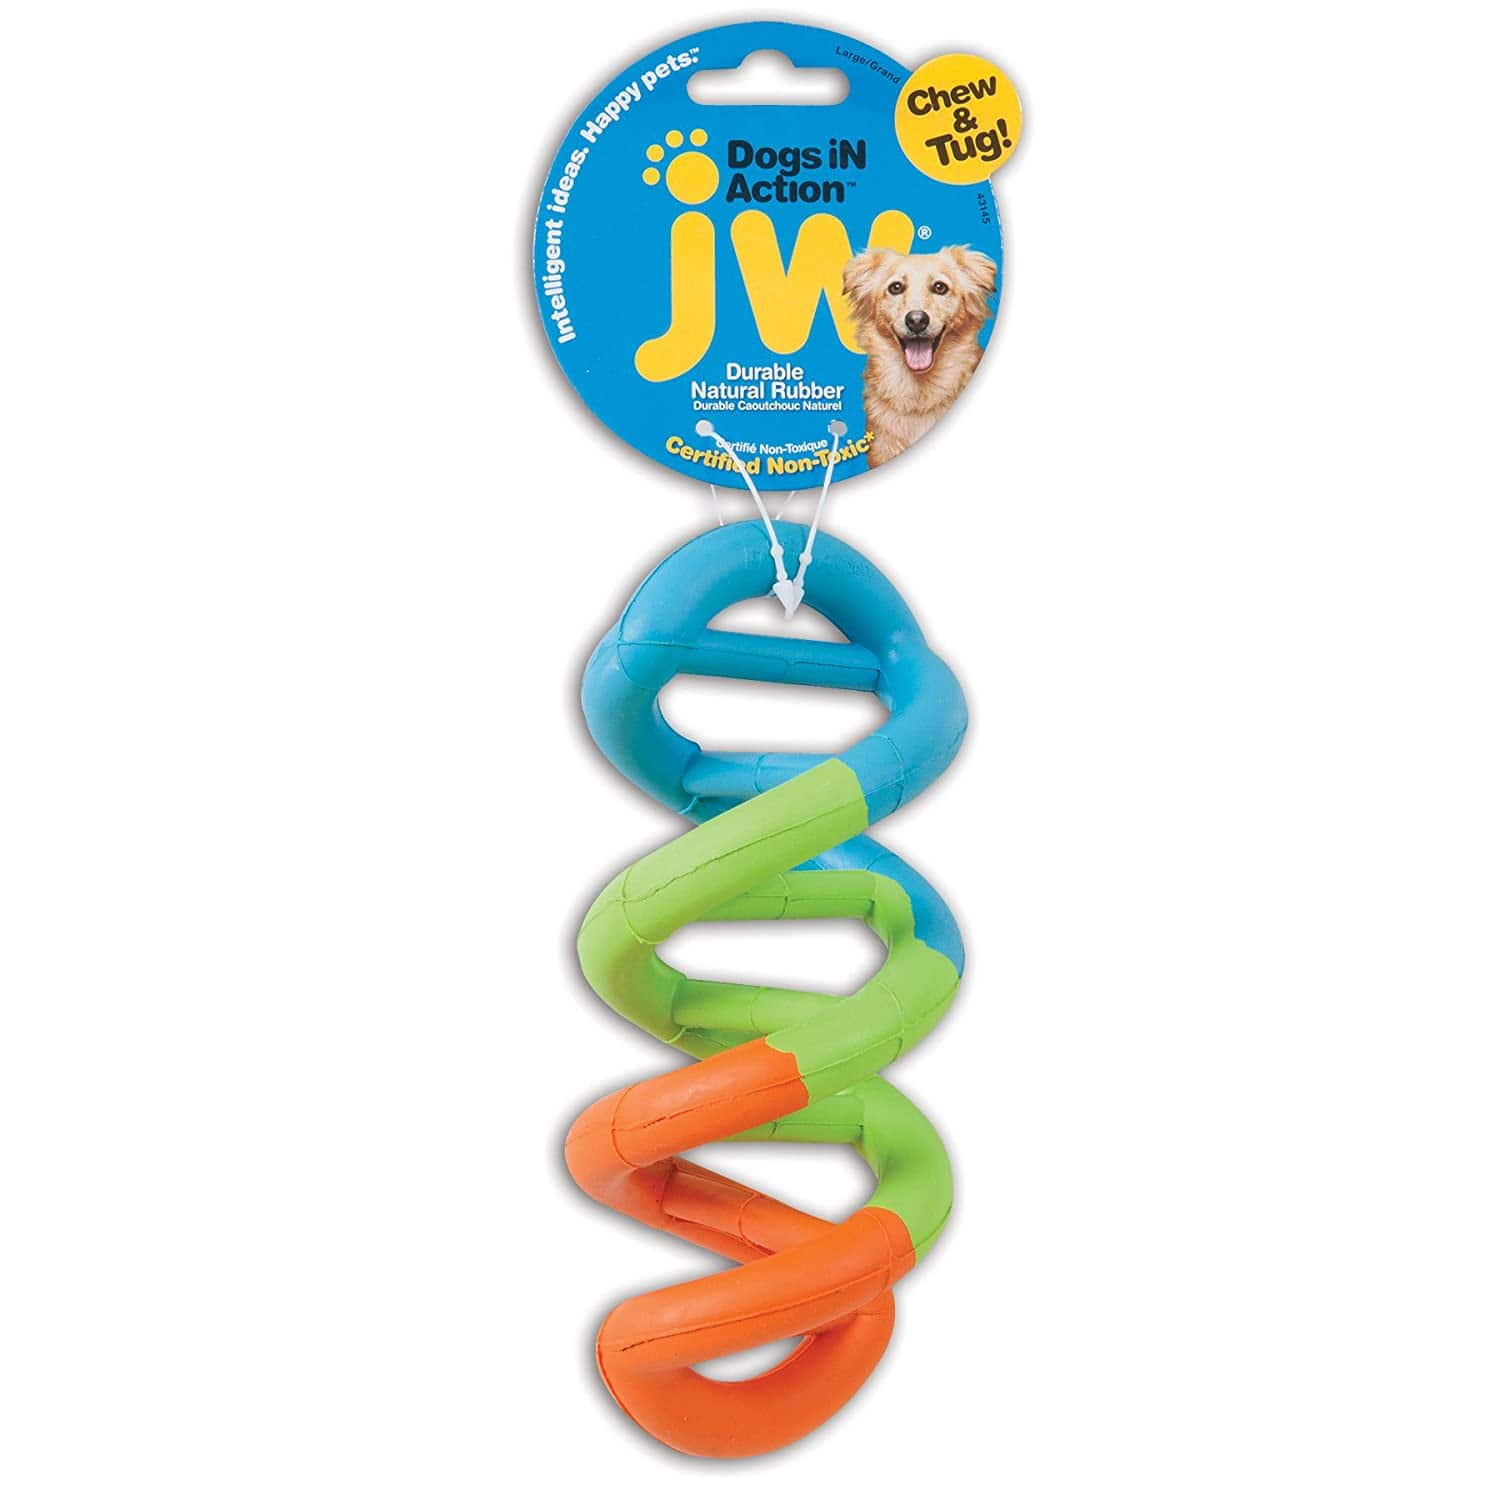 JW Dogs in Action Rubber Dog Chew Toy